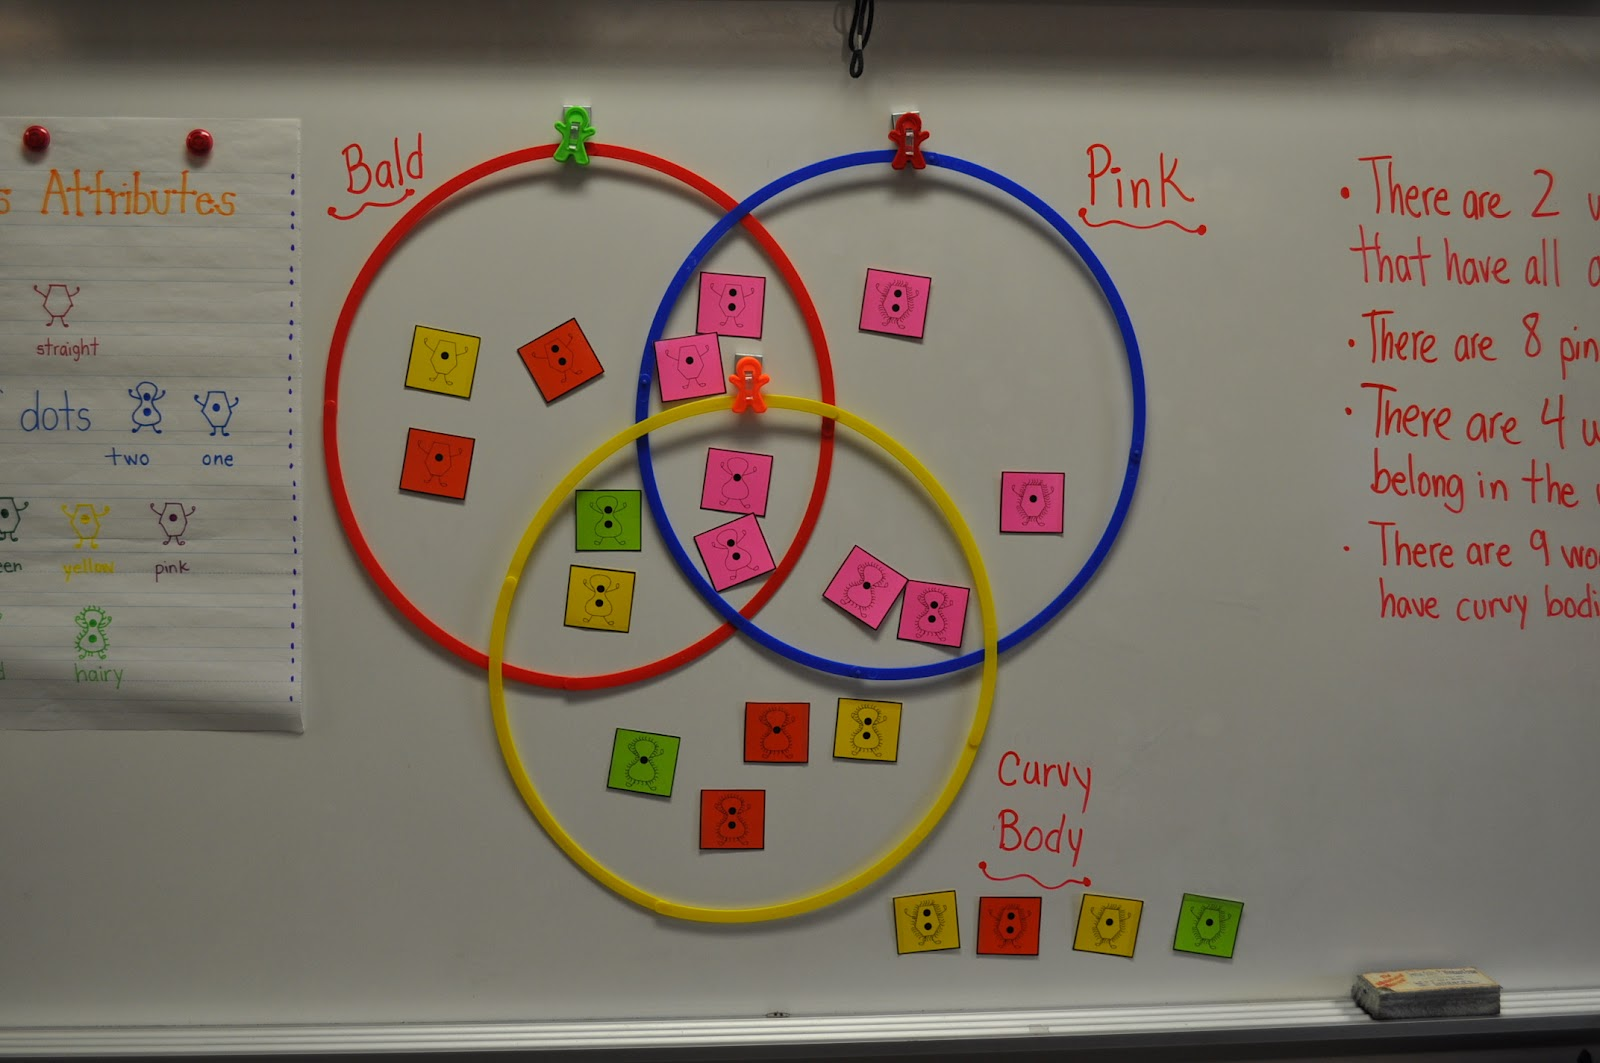 My Second Sense Do You Woozle Venn Diagram For Smartboard Kids Came Up To The White Board I Really Want A Tape Them They Were Sure Check That Each Wozzle Was Placed In Correct Spot